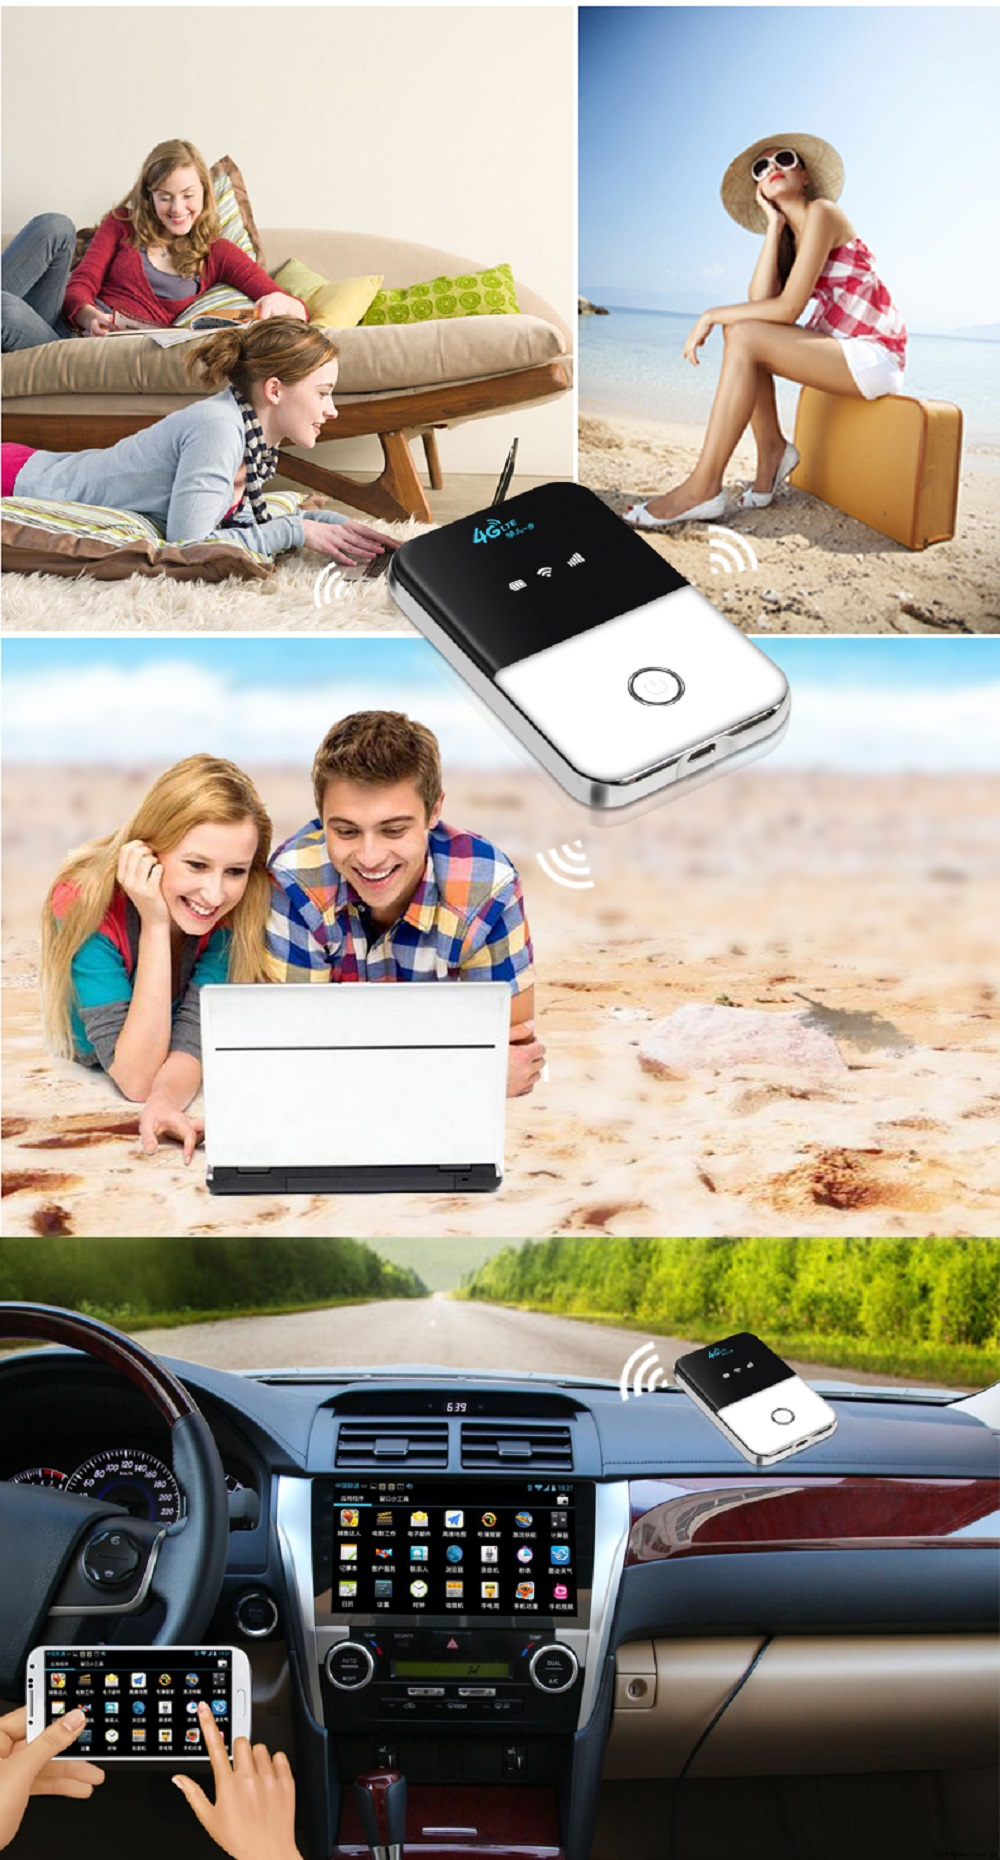 4G Lte Pocket Wifi Router Car Mobile Wifi Hotspot Wireless Broadband Unlocked Modem Router 4G With Sim Card Slot